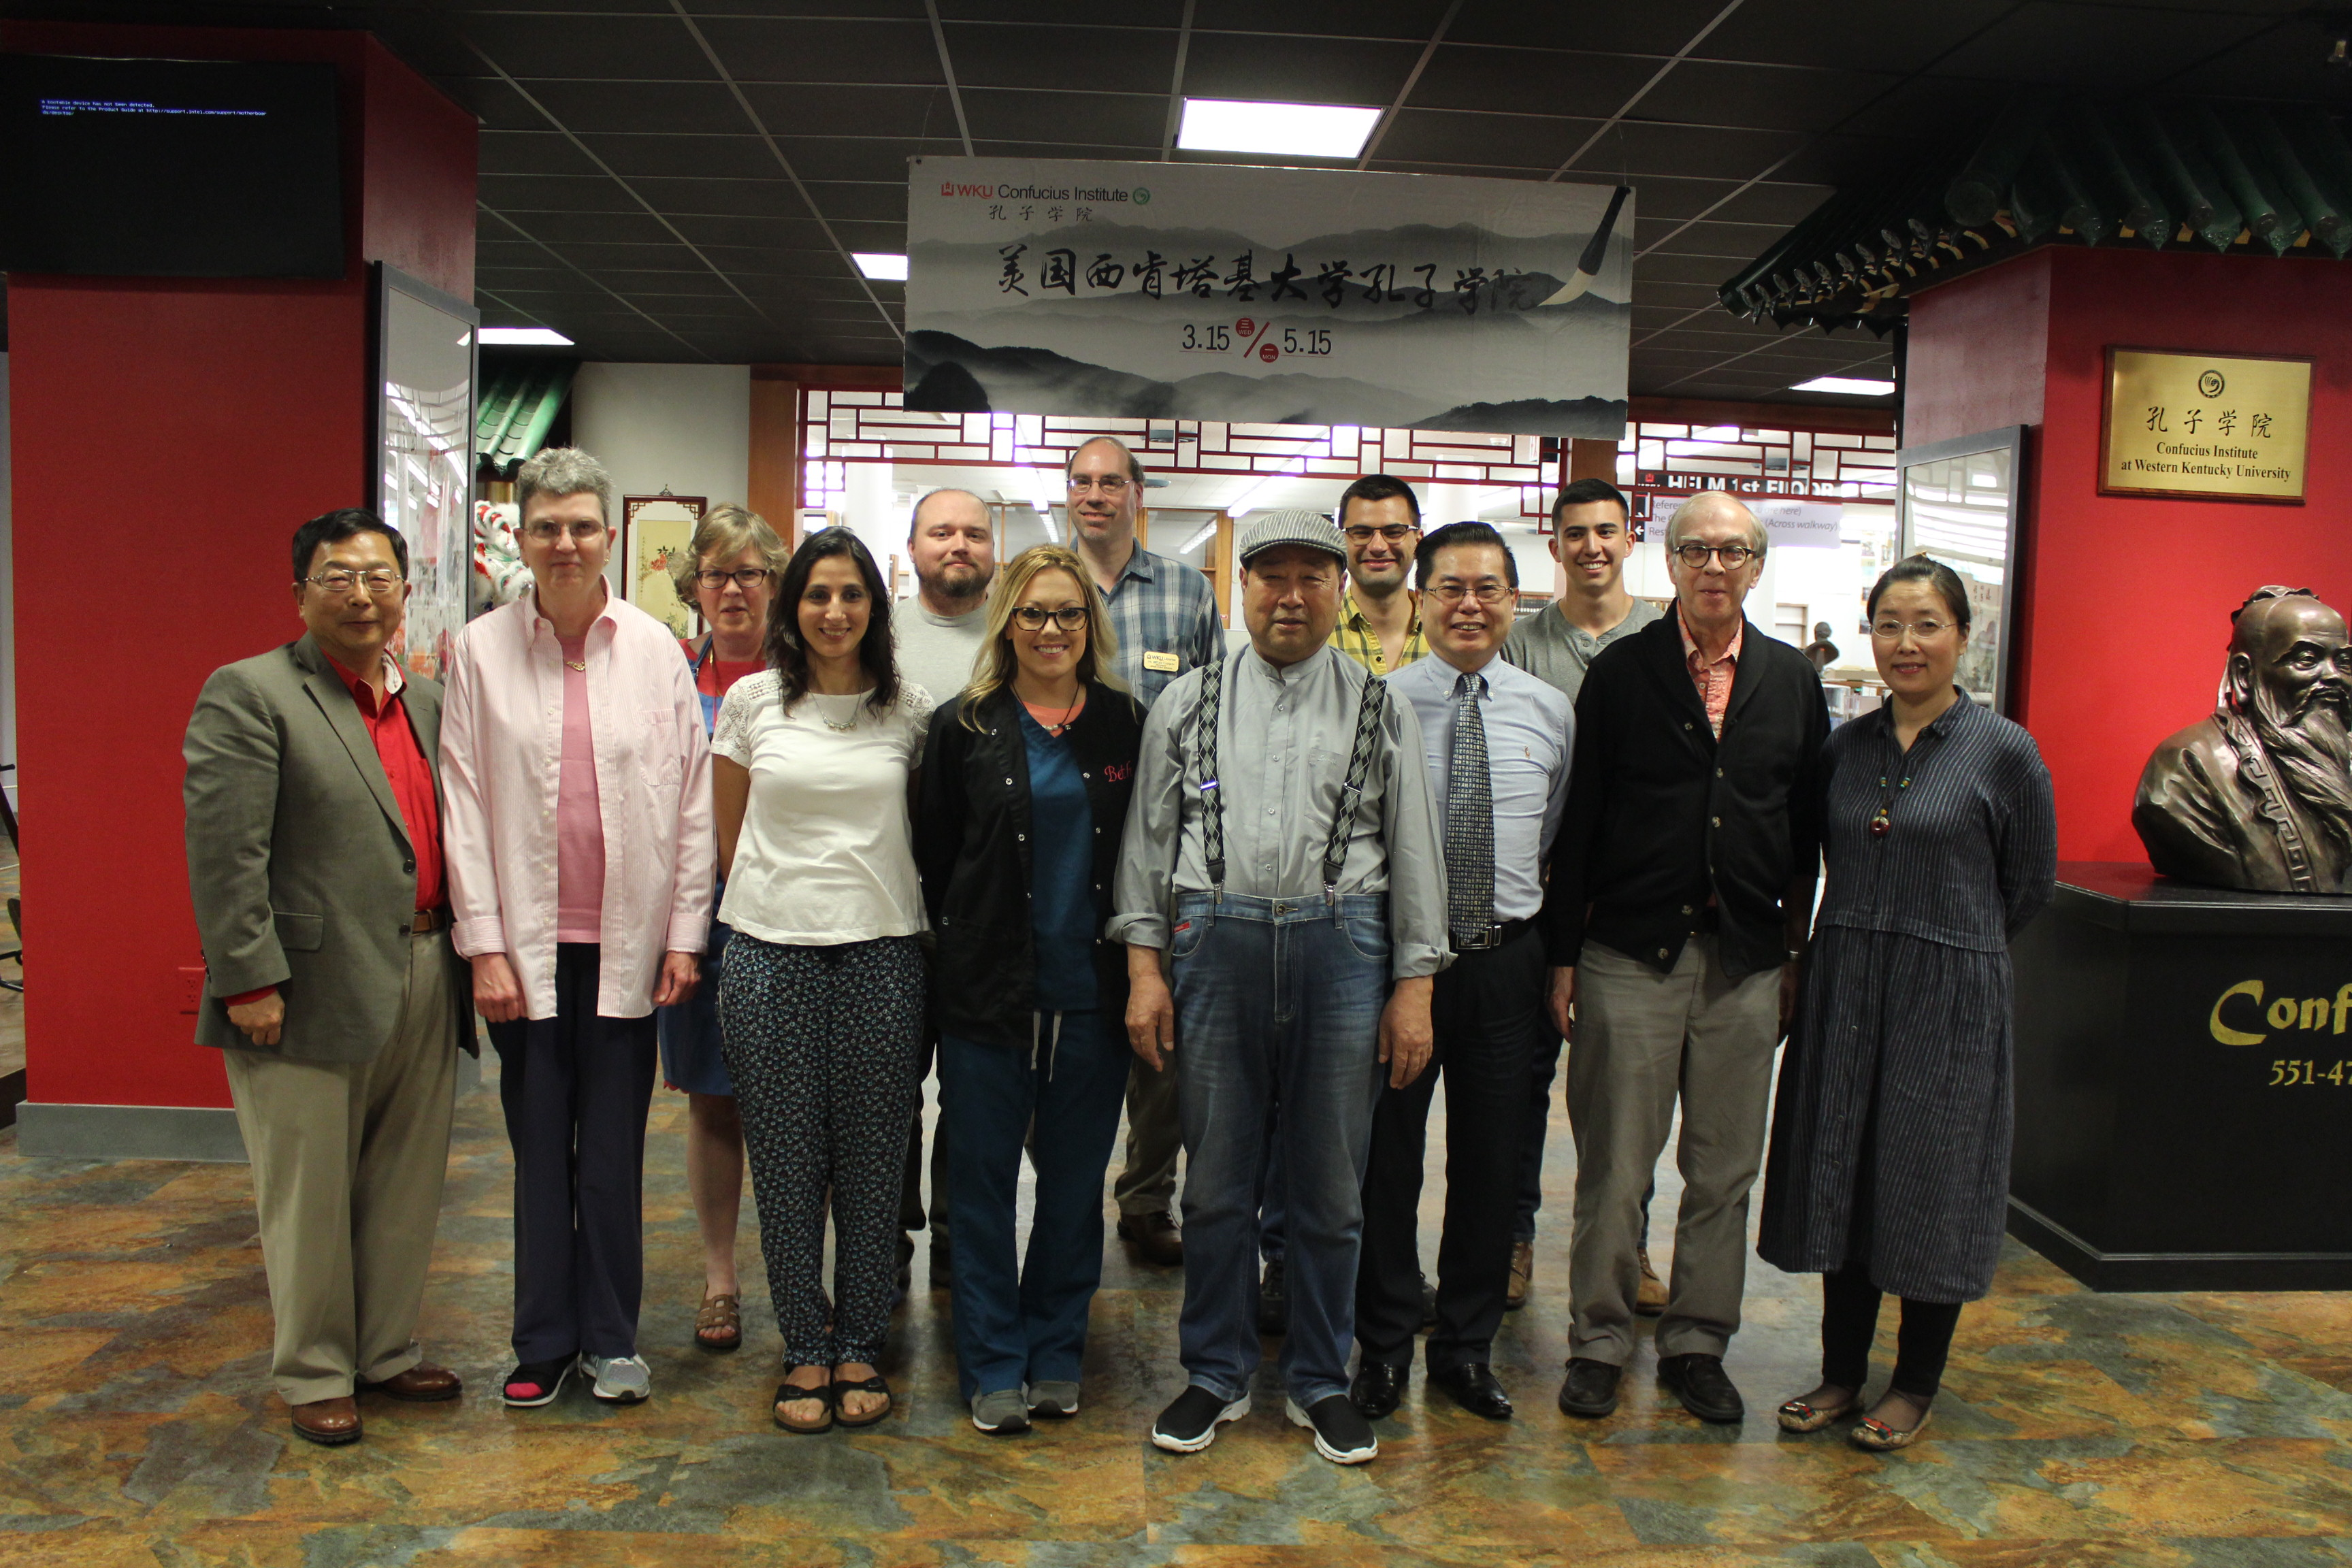 Liu and class in the Confucius Institute in WKU Libraries